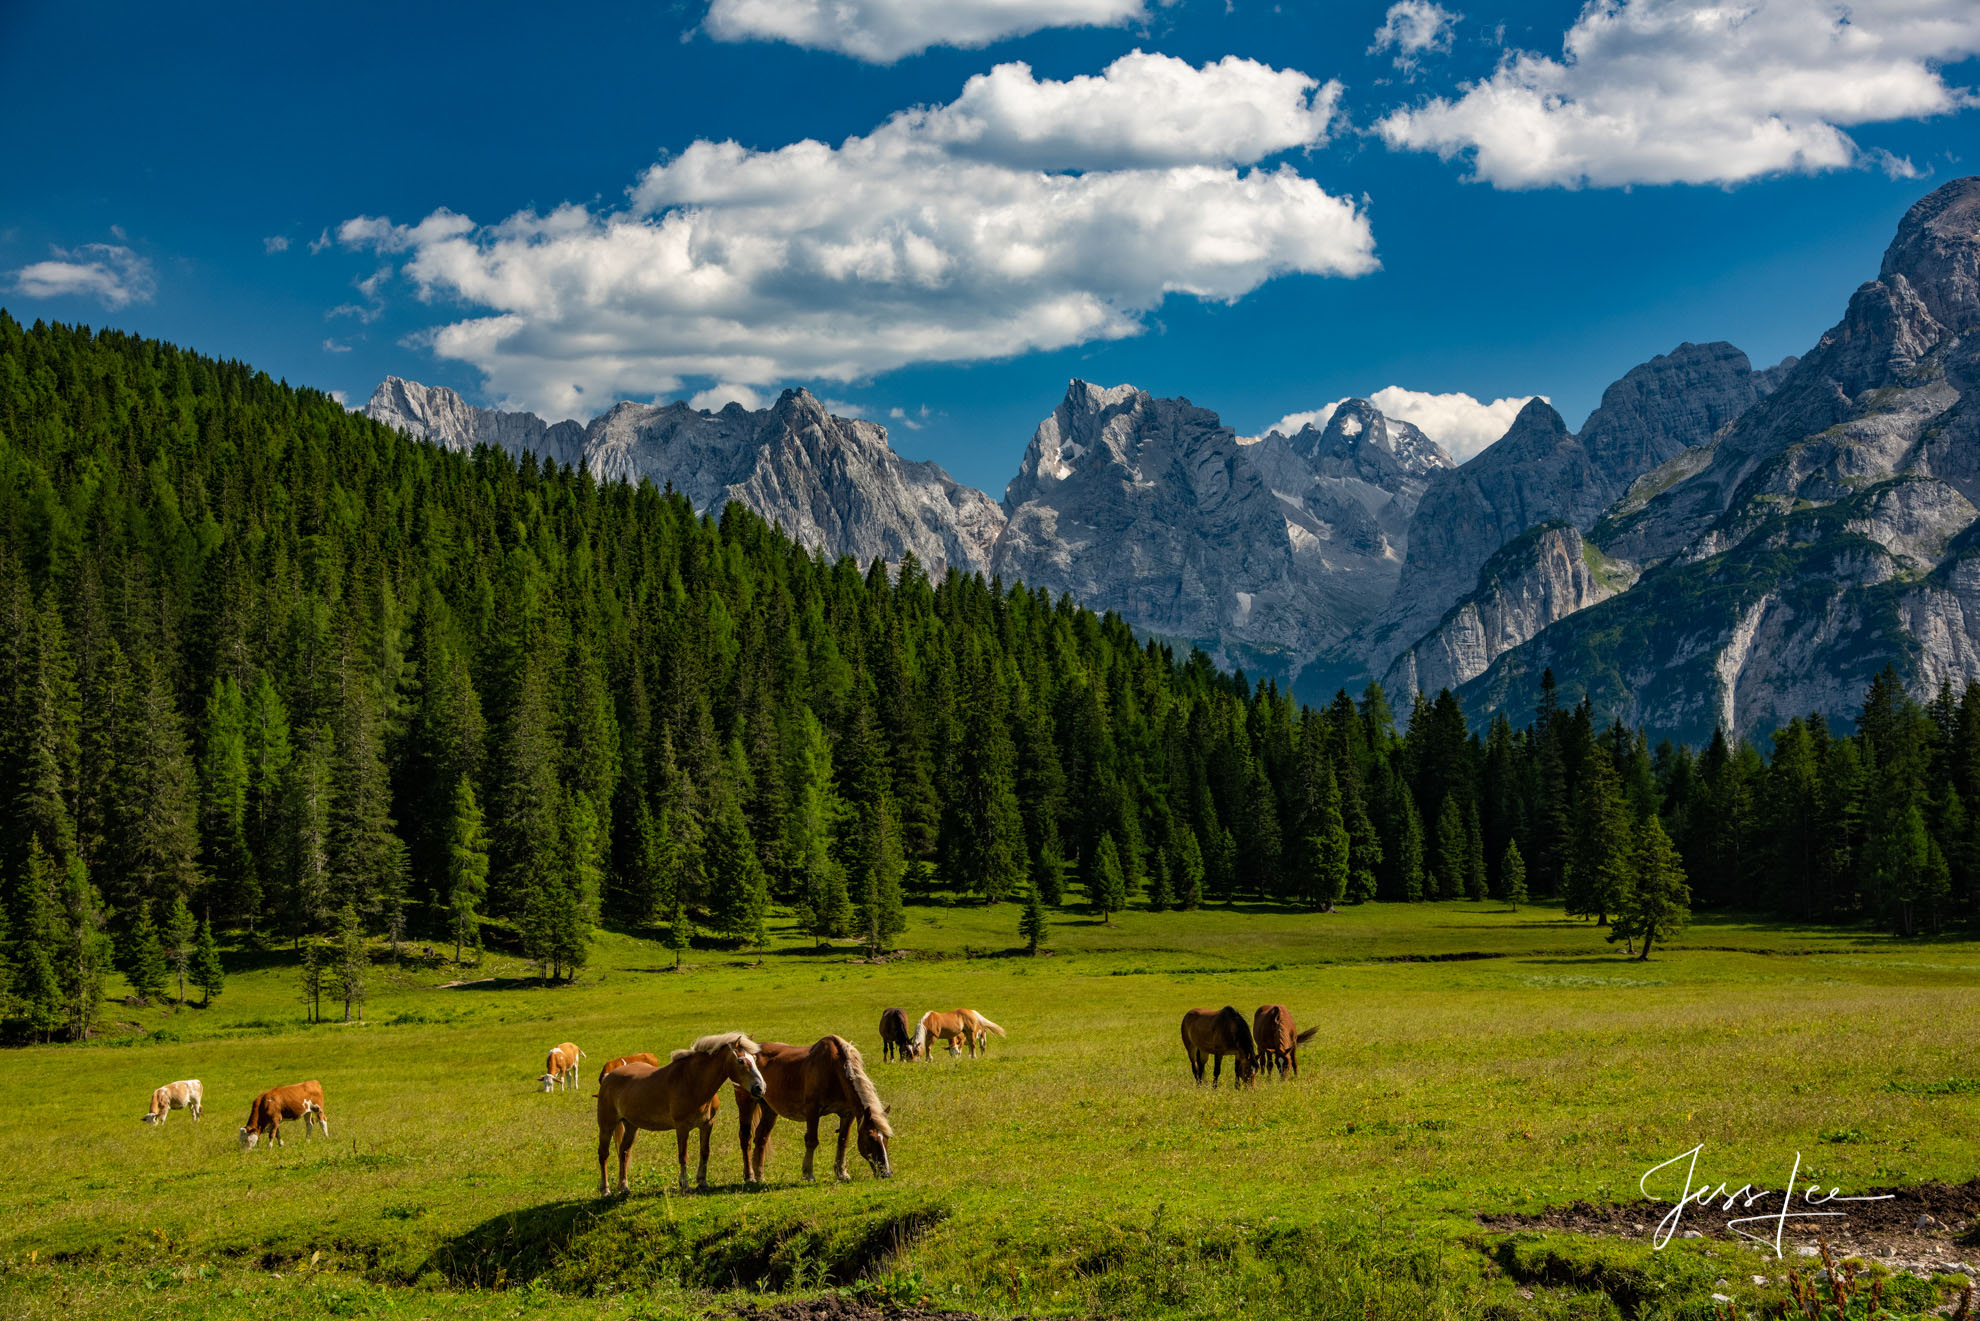 mountain photography, Dolomites, Haflinger, Italy, mountains, horses, rugged, fine art, limited edition, tyrol, jess lee, artist, western, cowboy, photographer, high quality, high resolution, beautifu, photo